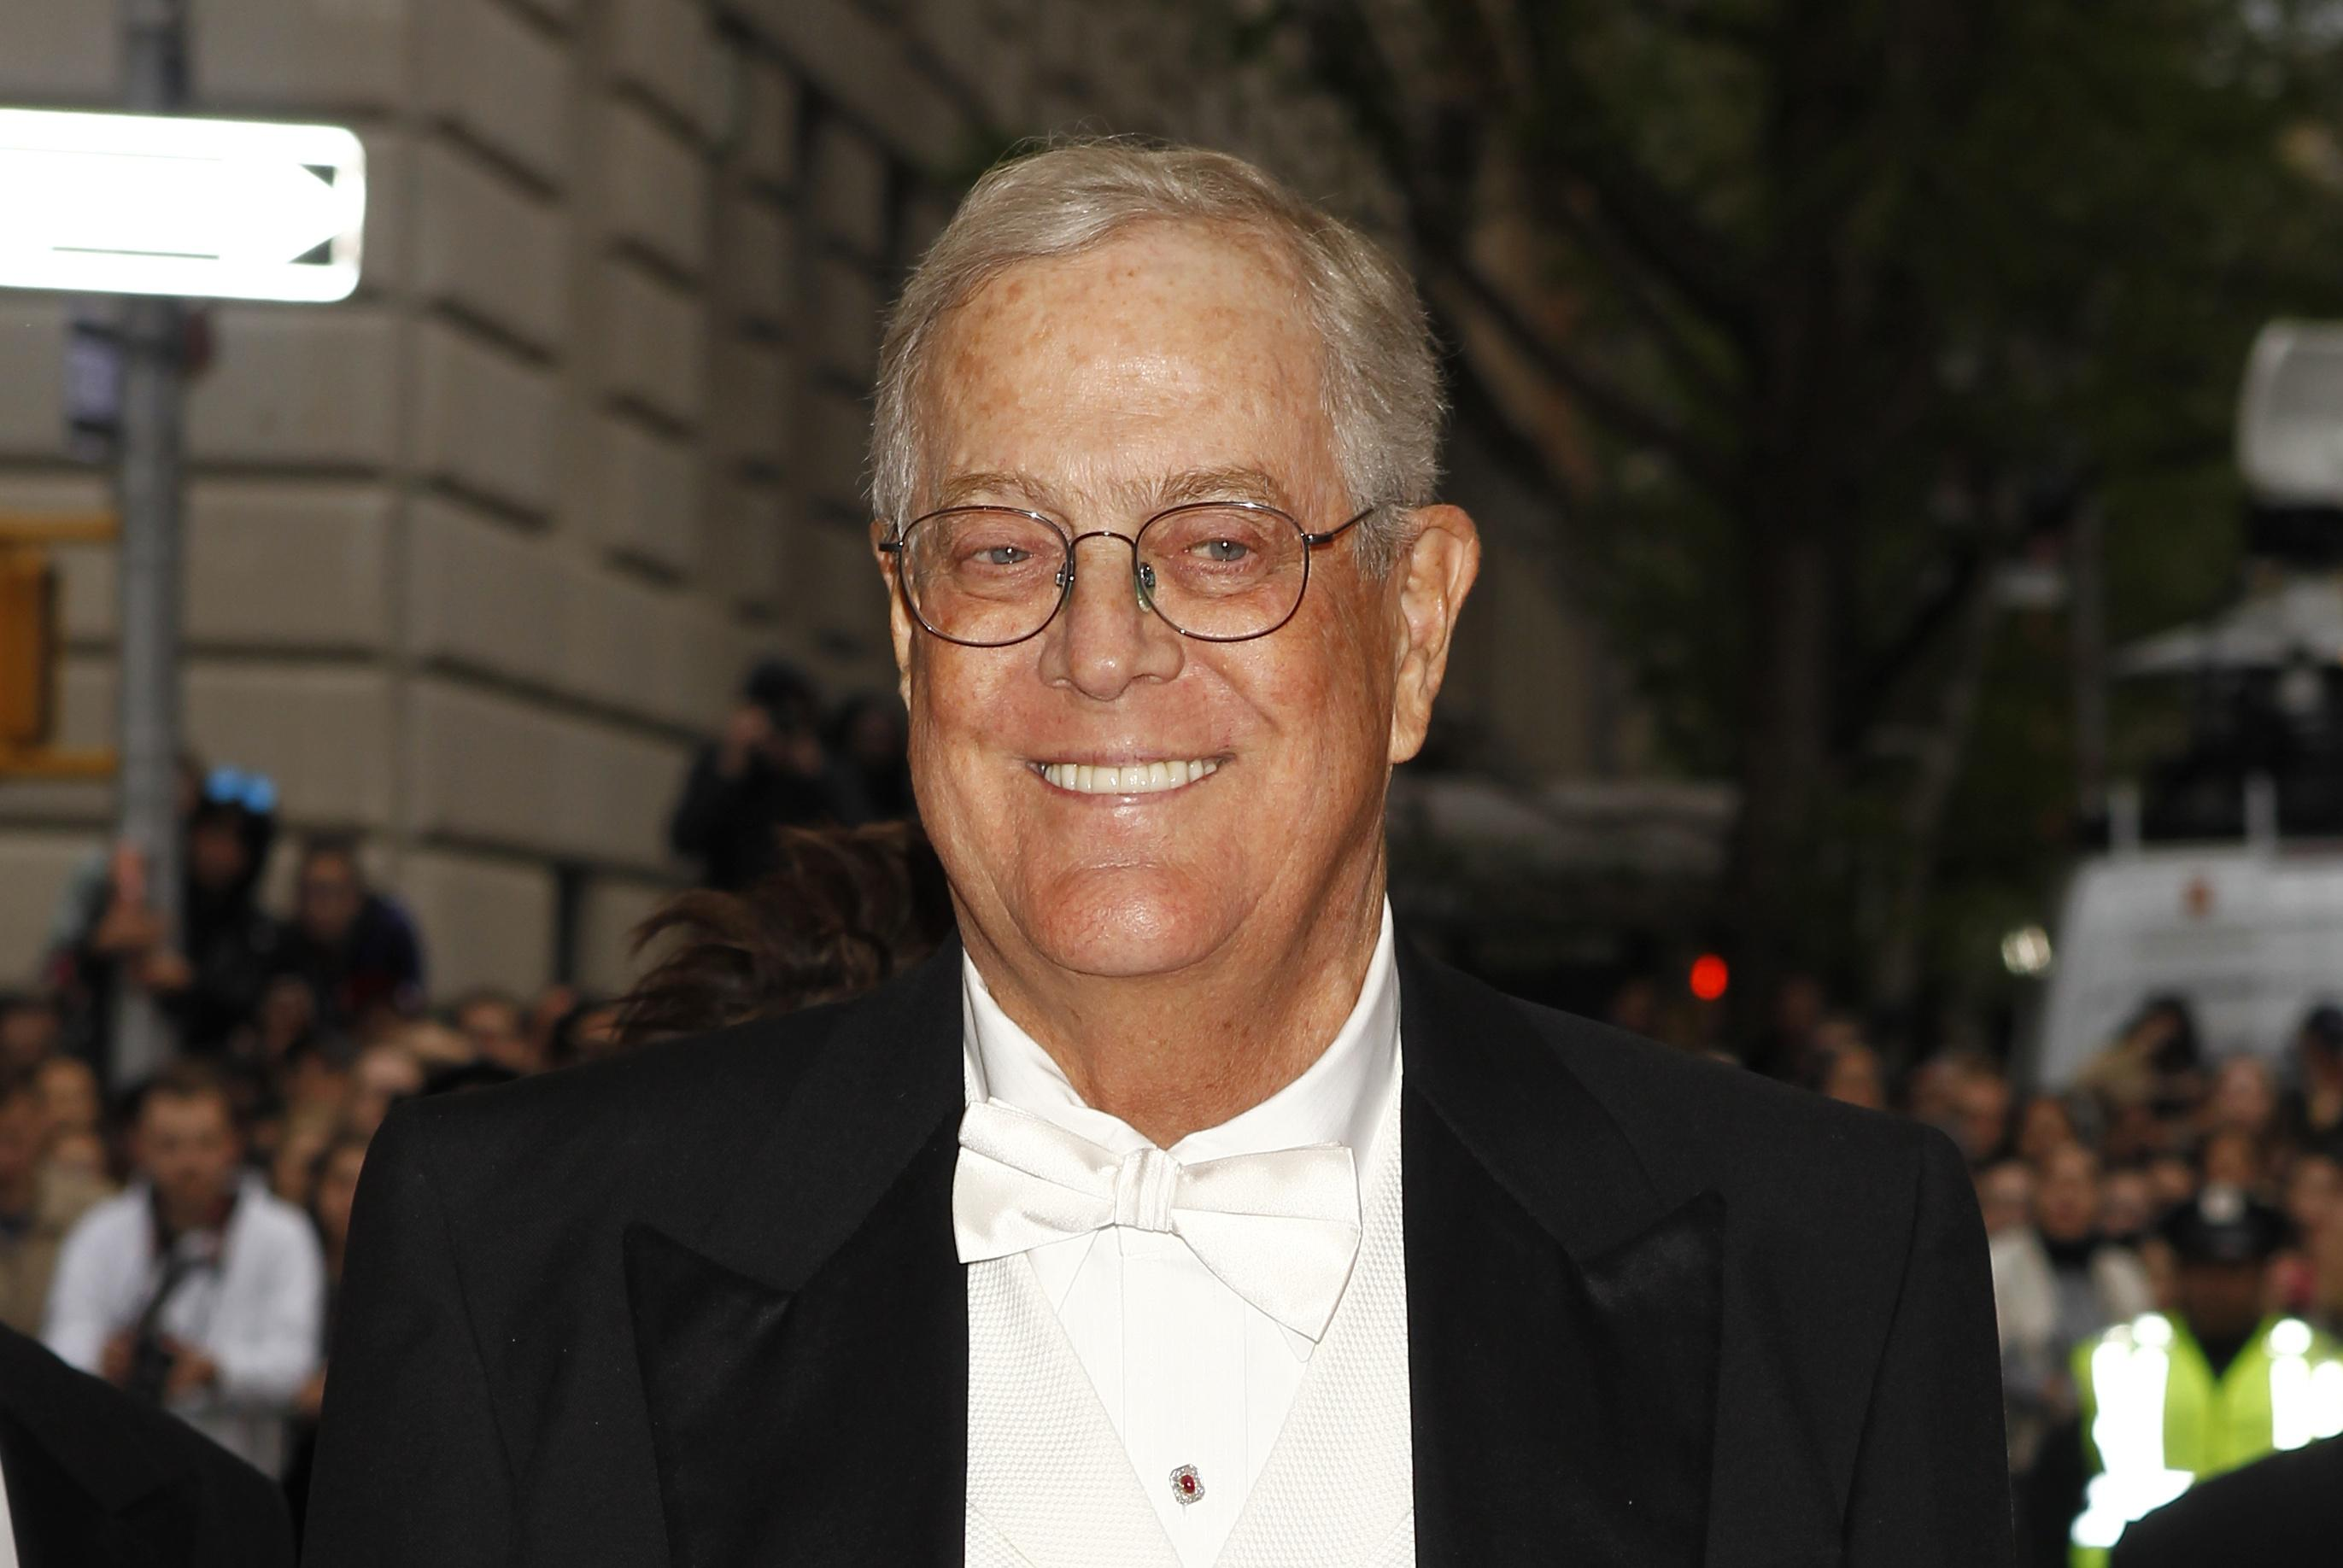 Conservative icon David Koch leaving business, politics | AP business